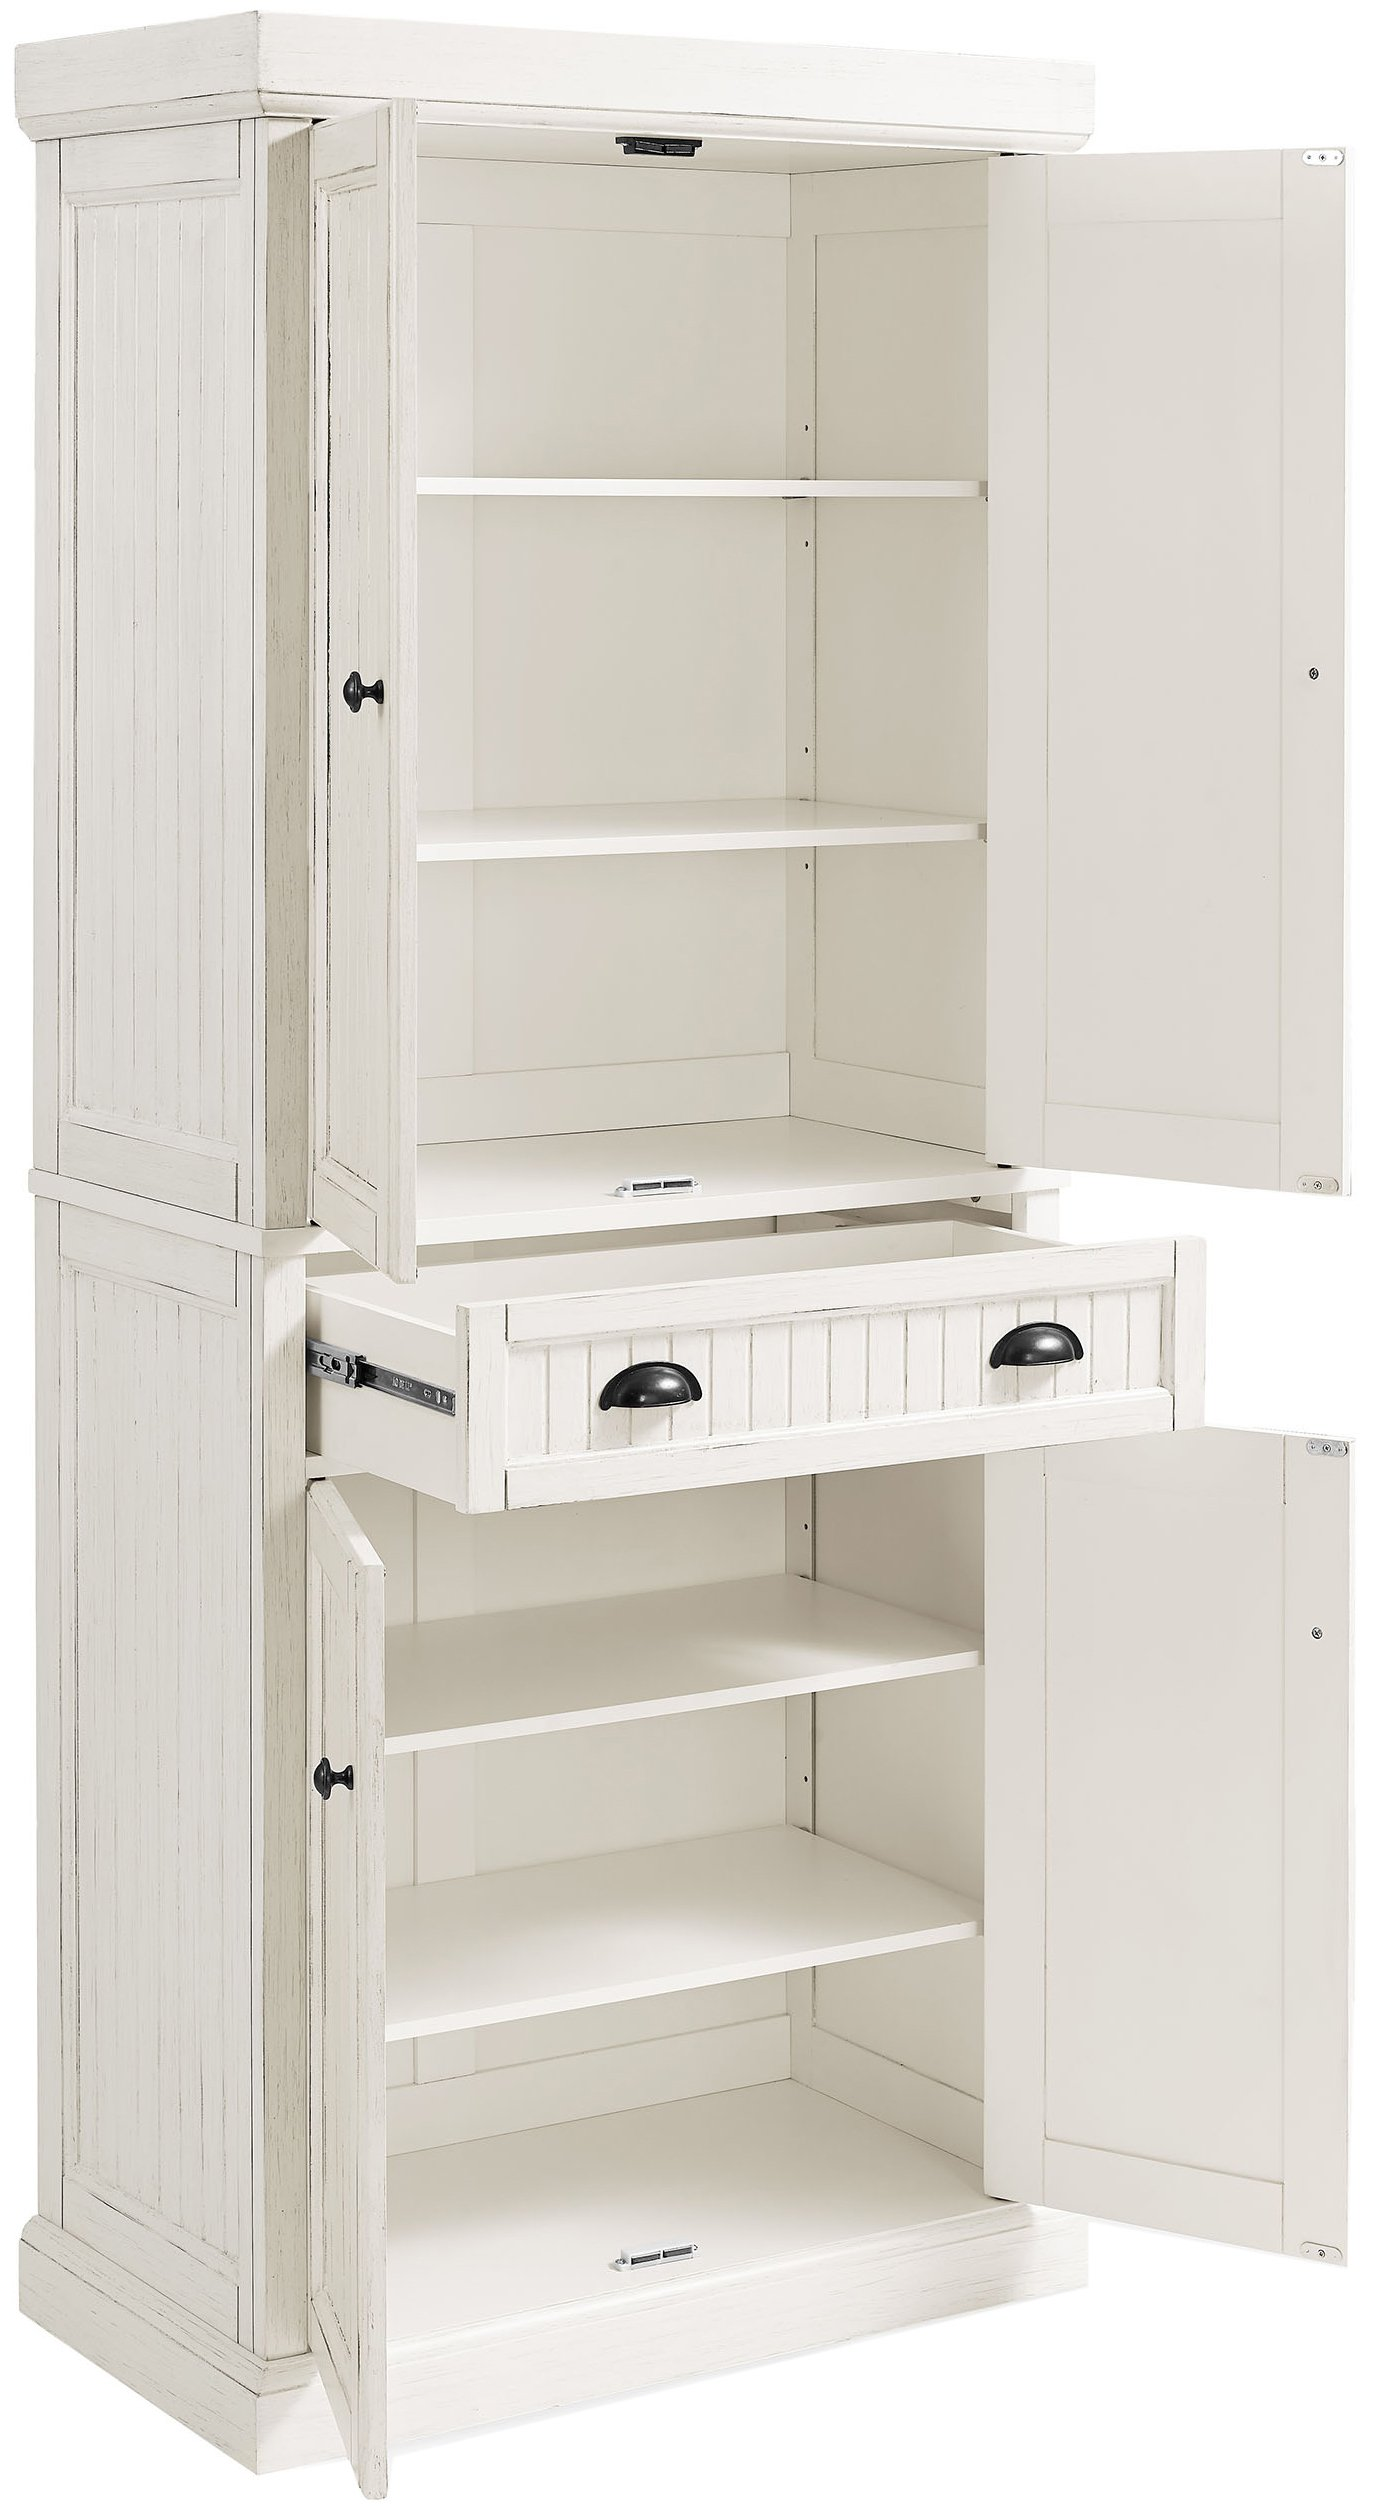 Crosley Furniture Seaside Kitchen Pantry Cabinet - Distressed White by Crosley Furniture (Image #3)